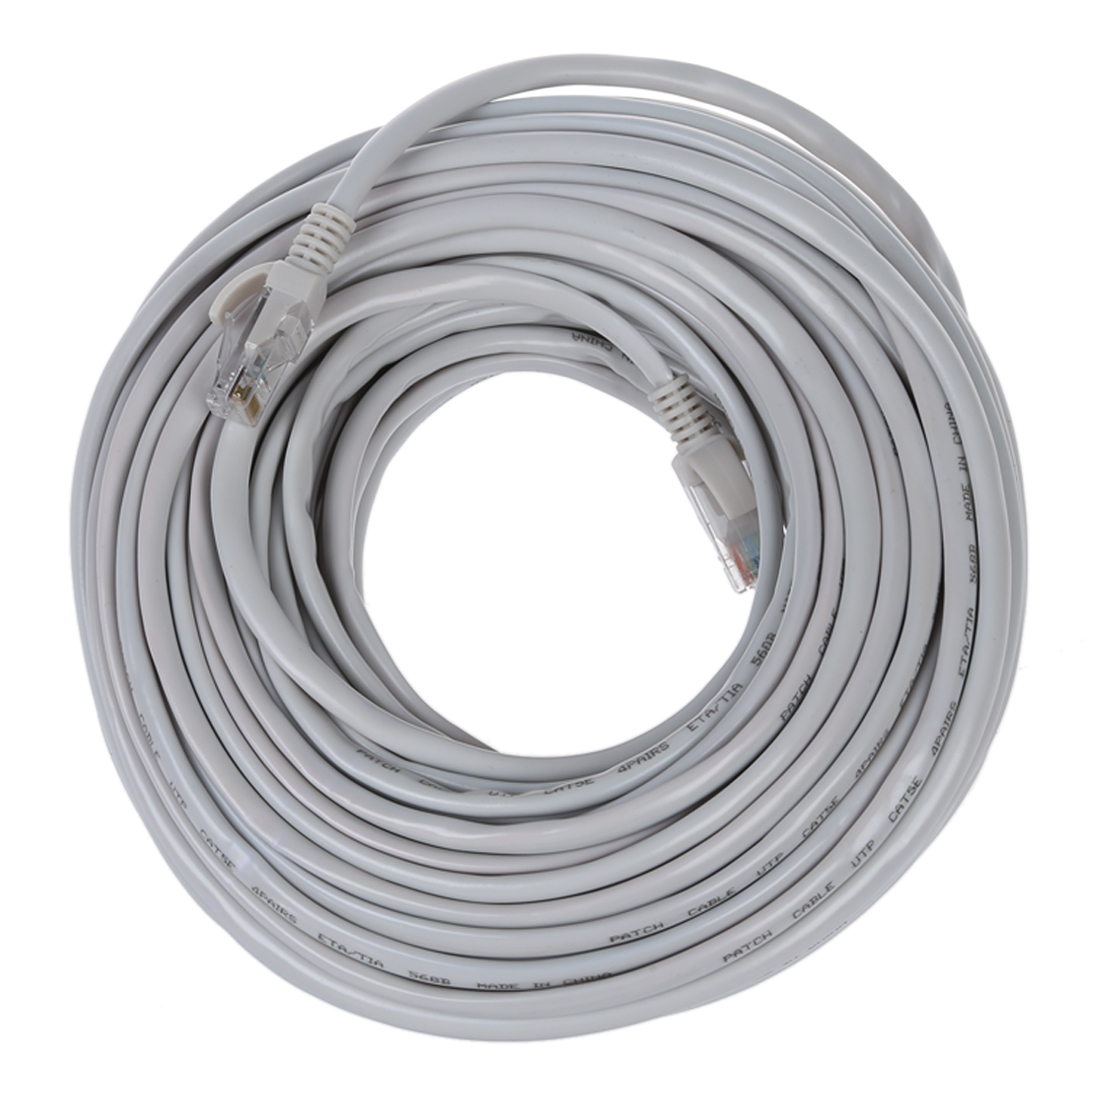 Ethernet Cable, CAT5e - 100 ft White (LAN hardware) EIA568 Patch ...